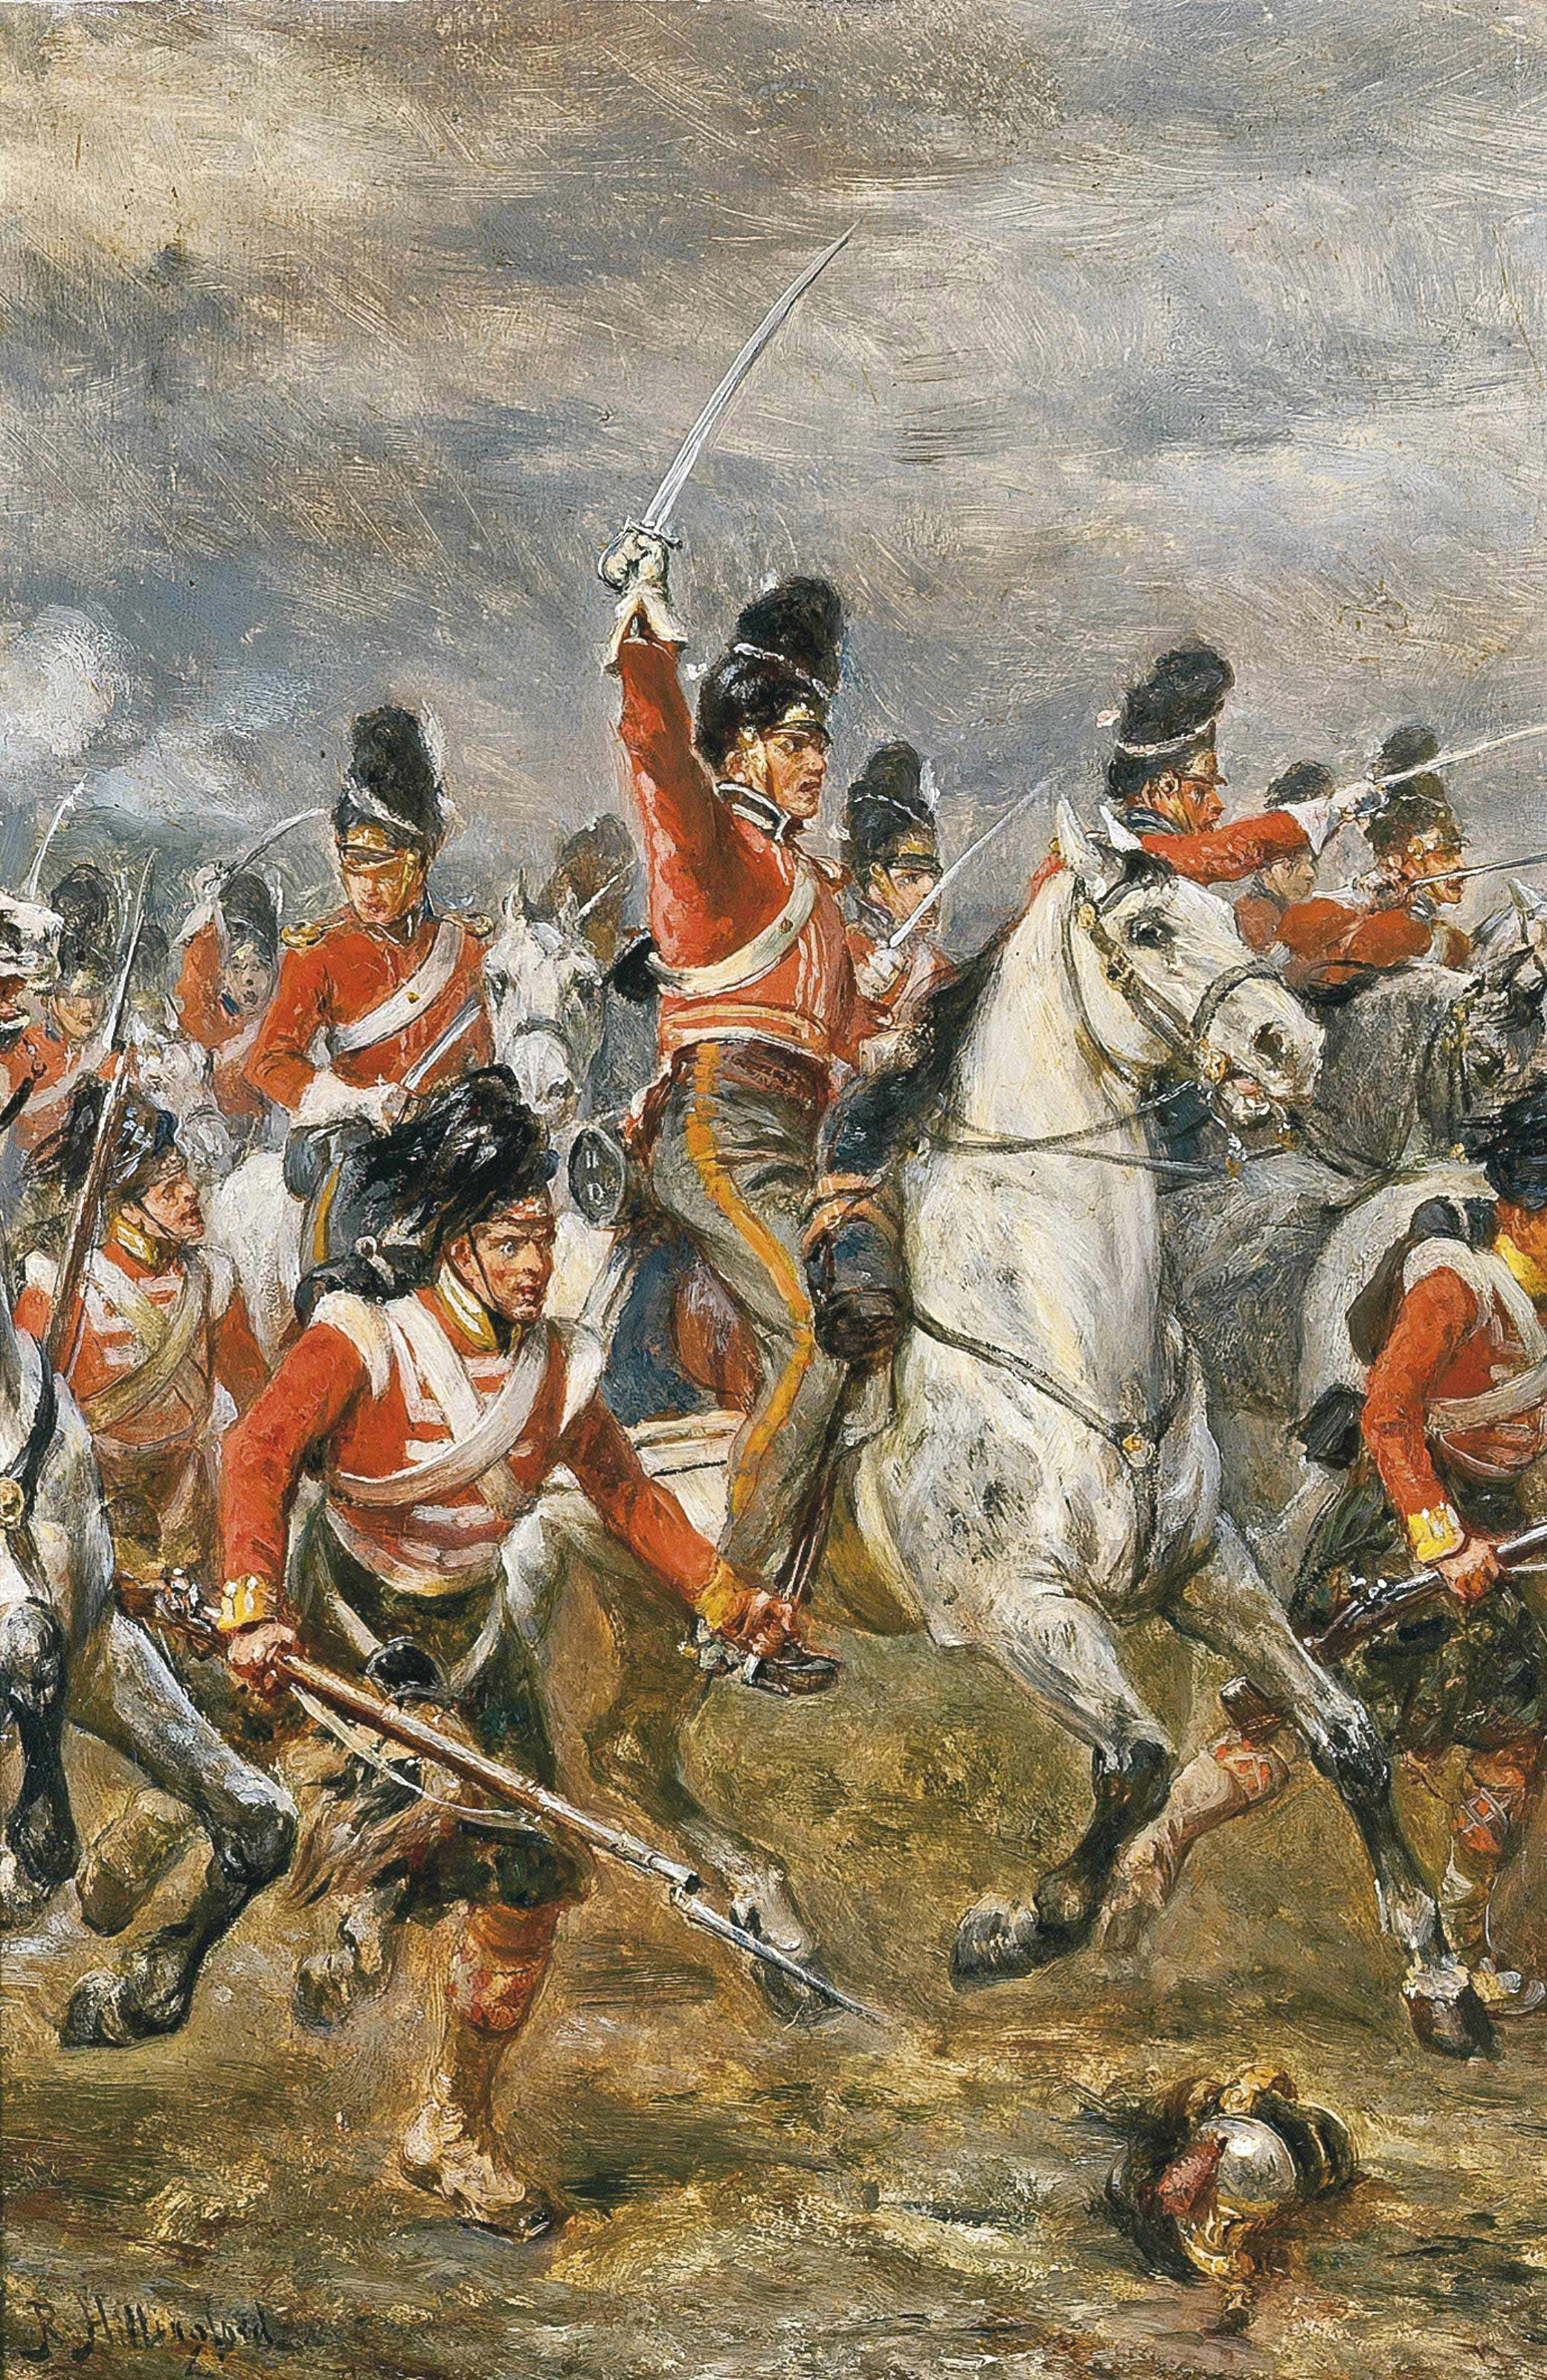 The charge of the Royal Scots Greys at Waterloo, supported by a Highland regiment